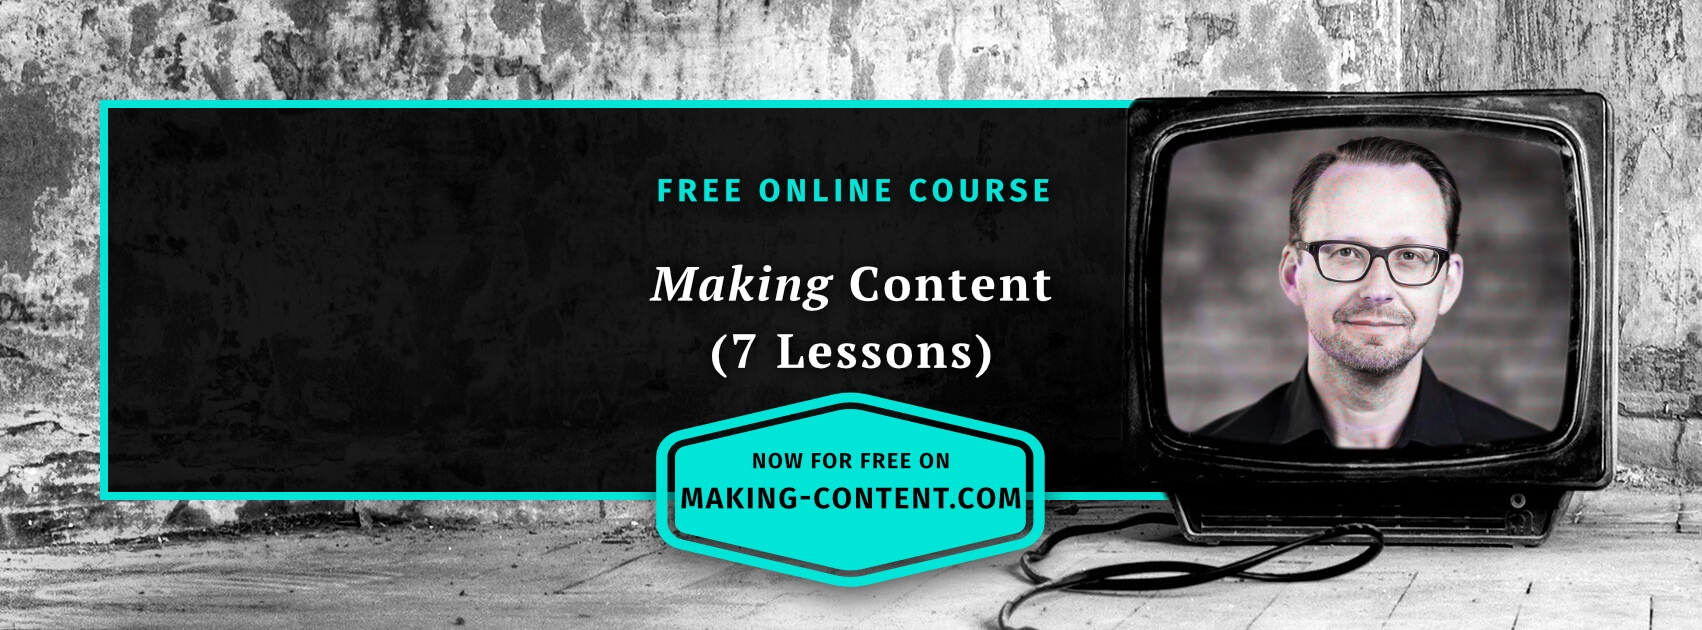 Online Course Making Content by Crispy Content